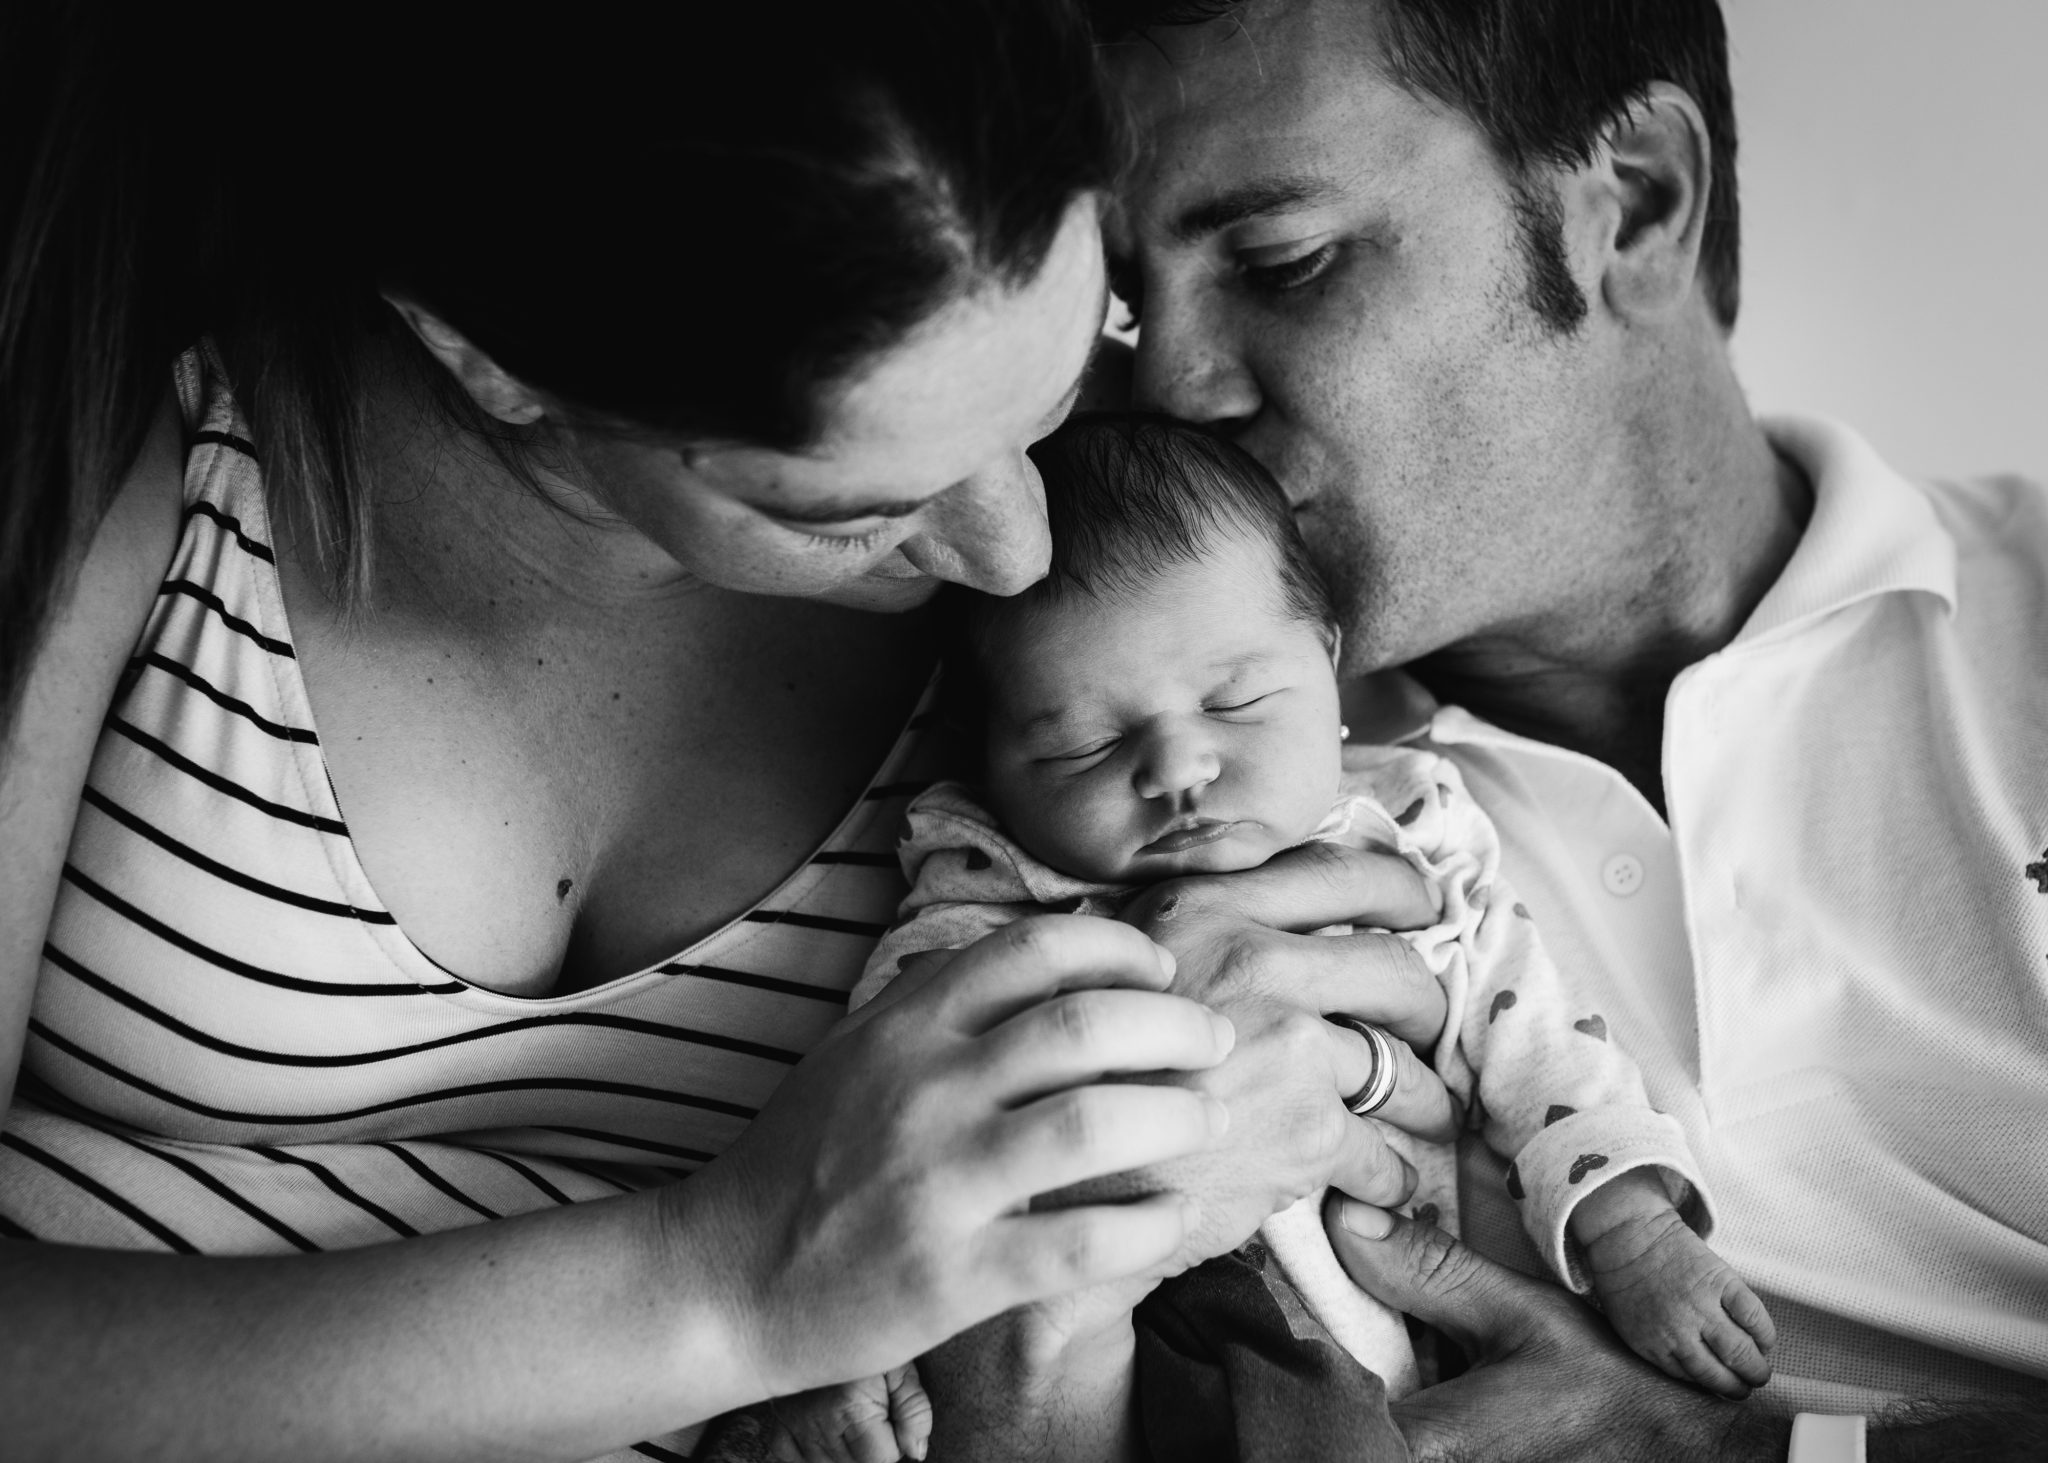 Family portrait during a newborn session.